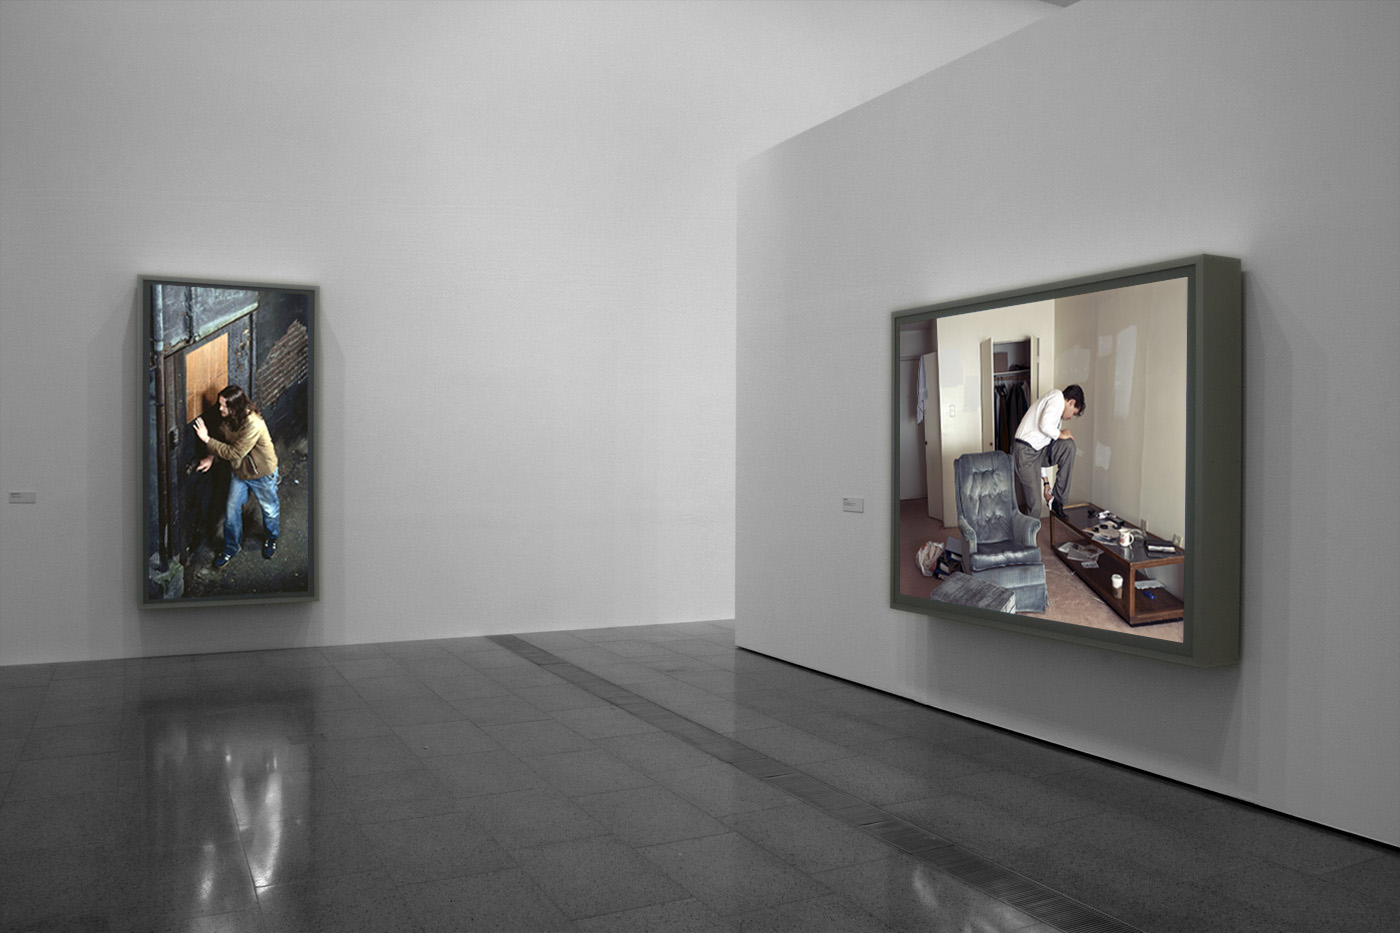 Wall Photo Light Box : Exhibition: Jeff Wall Photographs at The Ian Potter Centre: National Gallery of Victoria ...